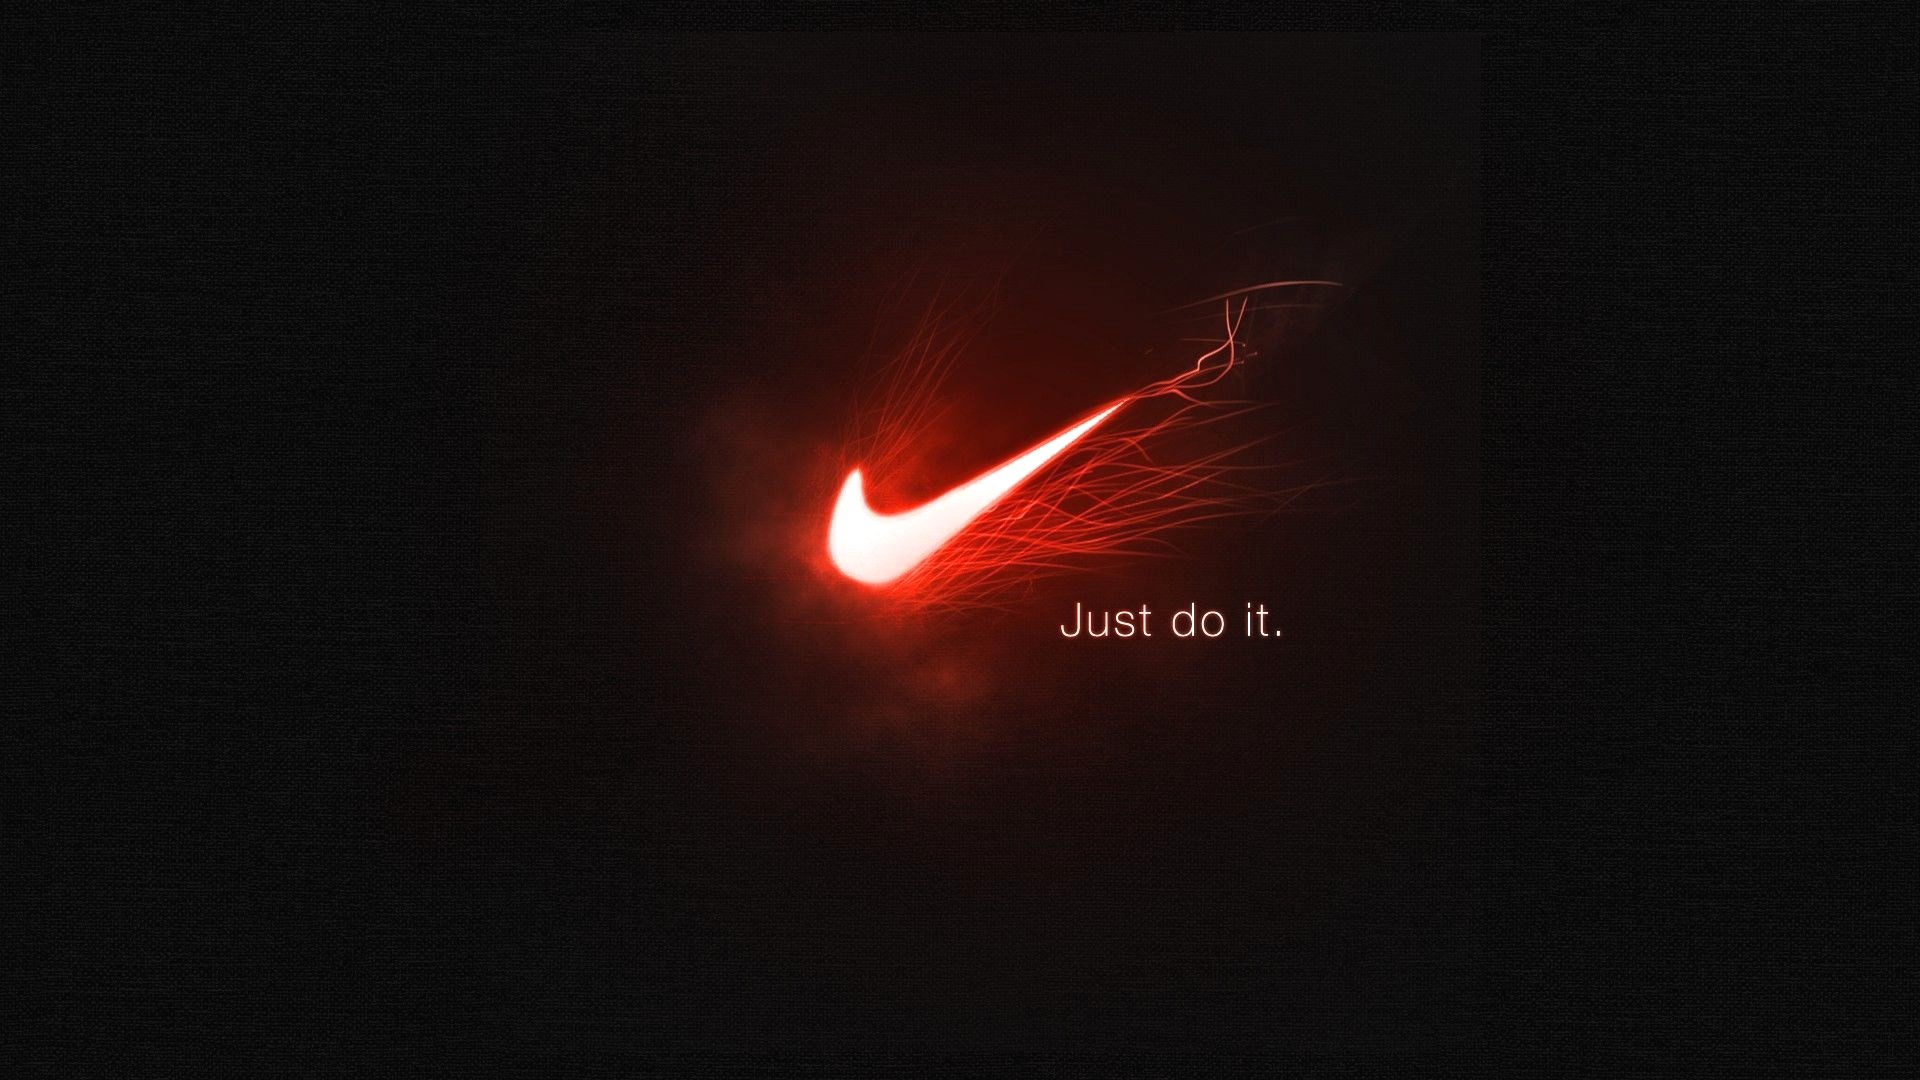 Nike Desktop Wallpapers 76 Pictures Avec 371864 Et Fond D